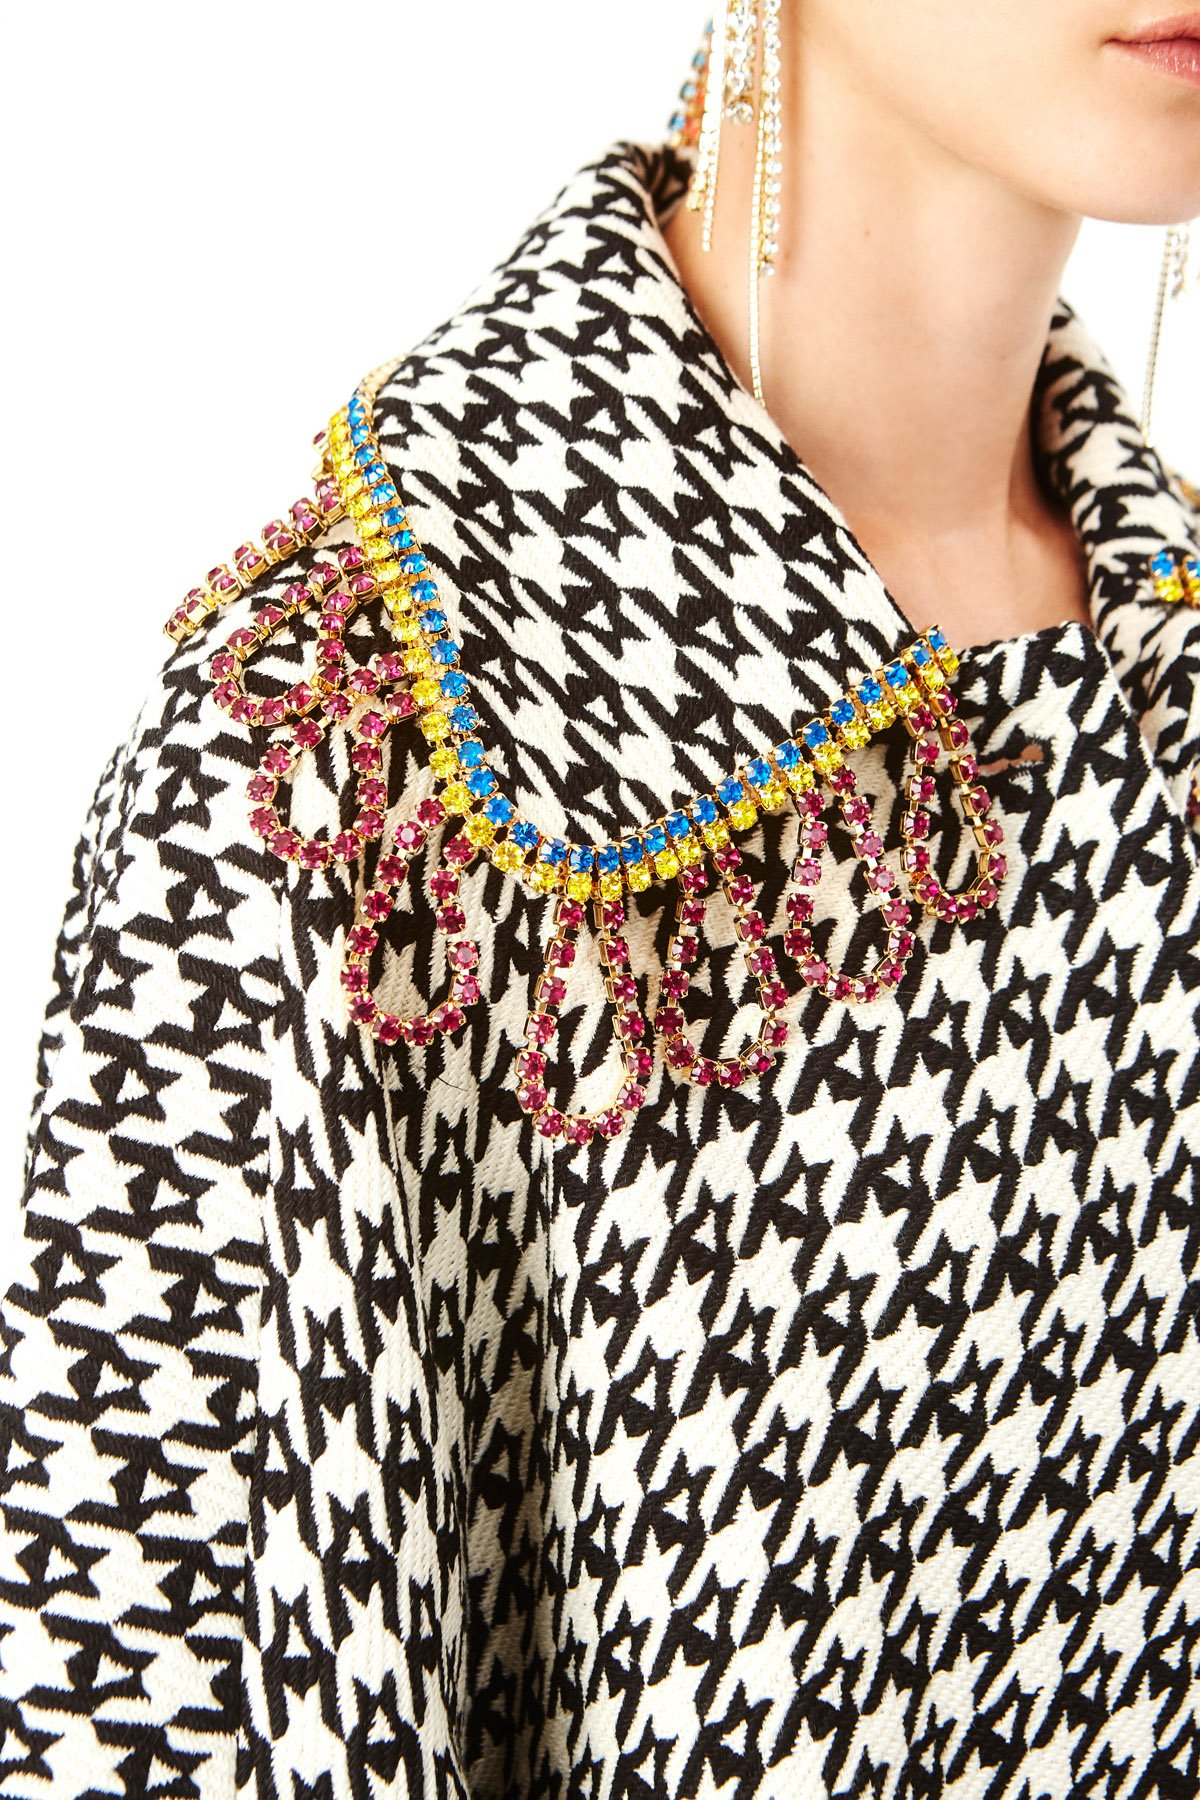 Cocoon-shaped jacket featuring multi-colored crystal loop fringe on collar. Available in Black/Ecru Houndstooth.